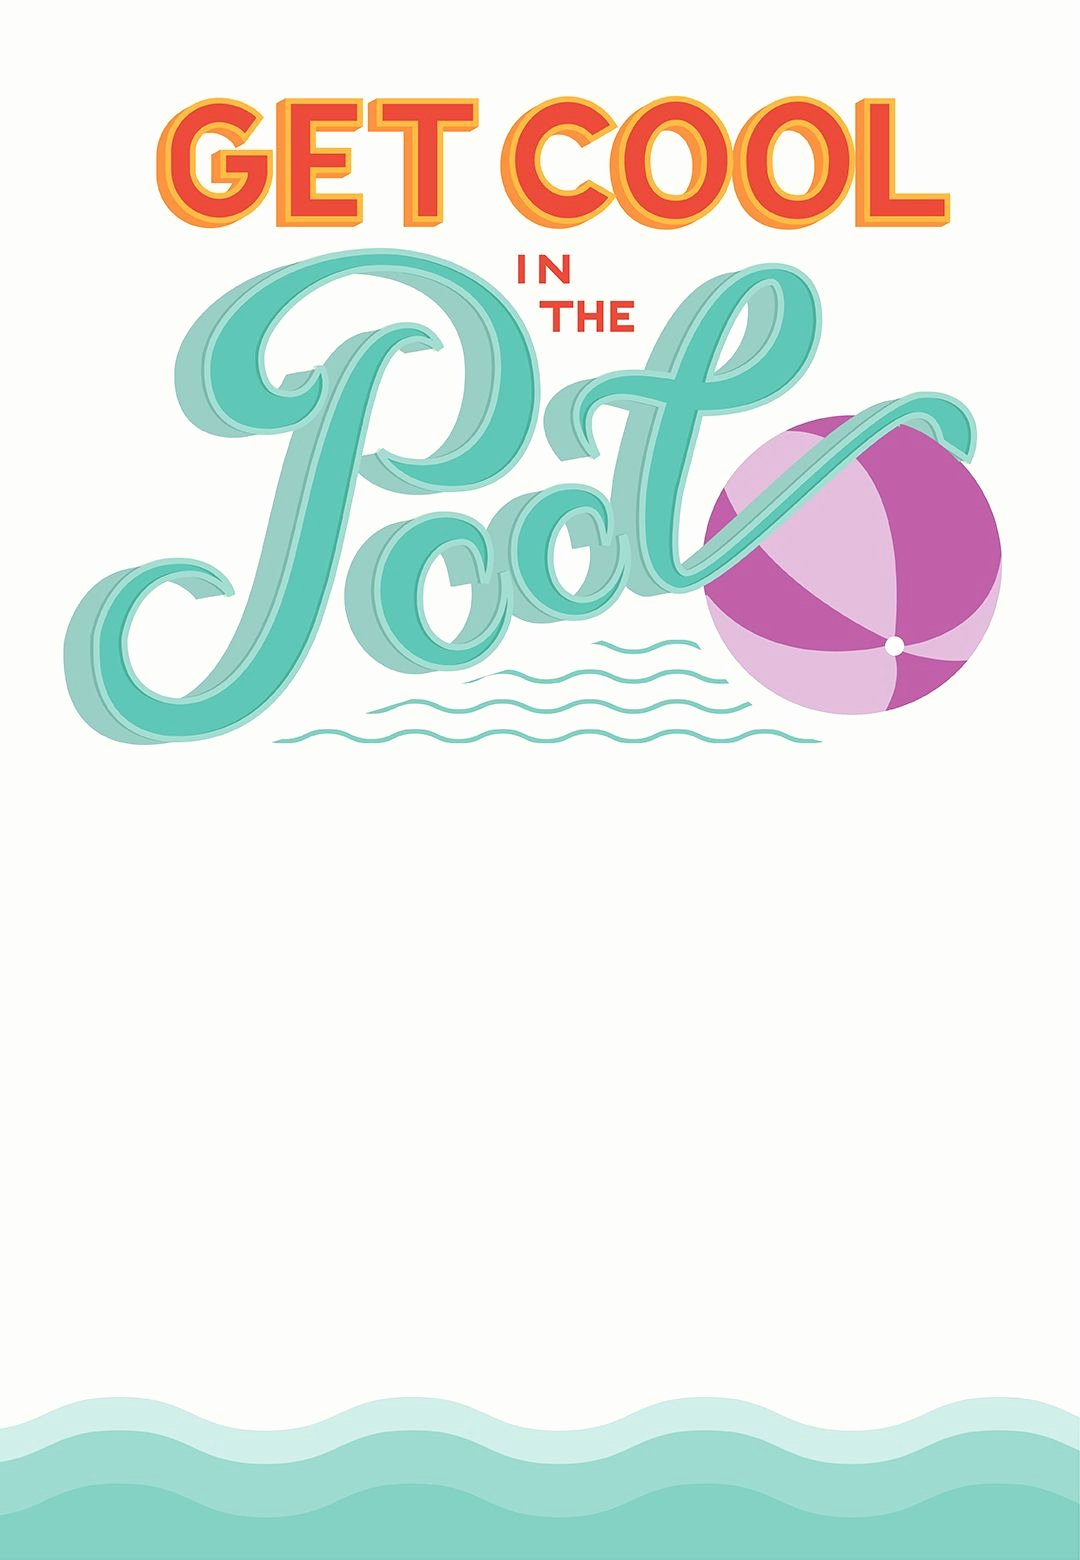 Pool Party Invite Template Beautiful Pool Party Free Printable Party Invitation Template